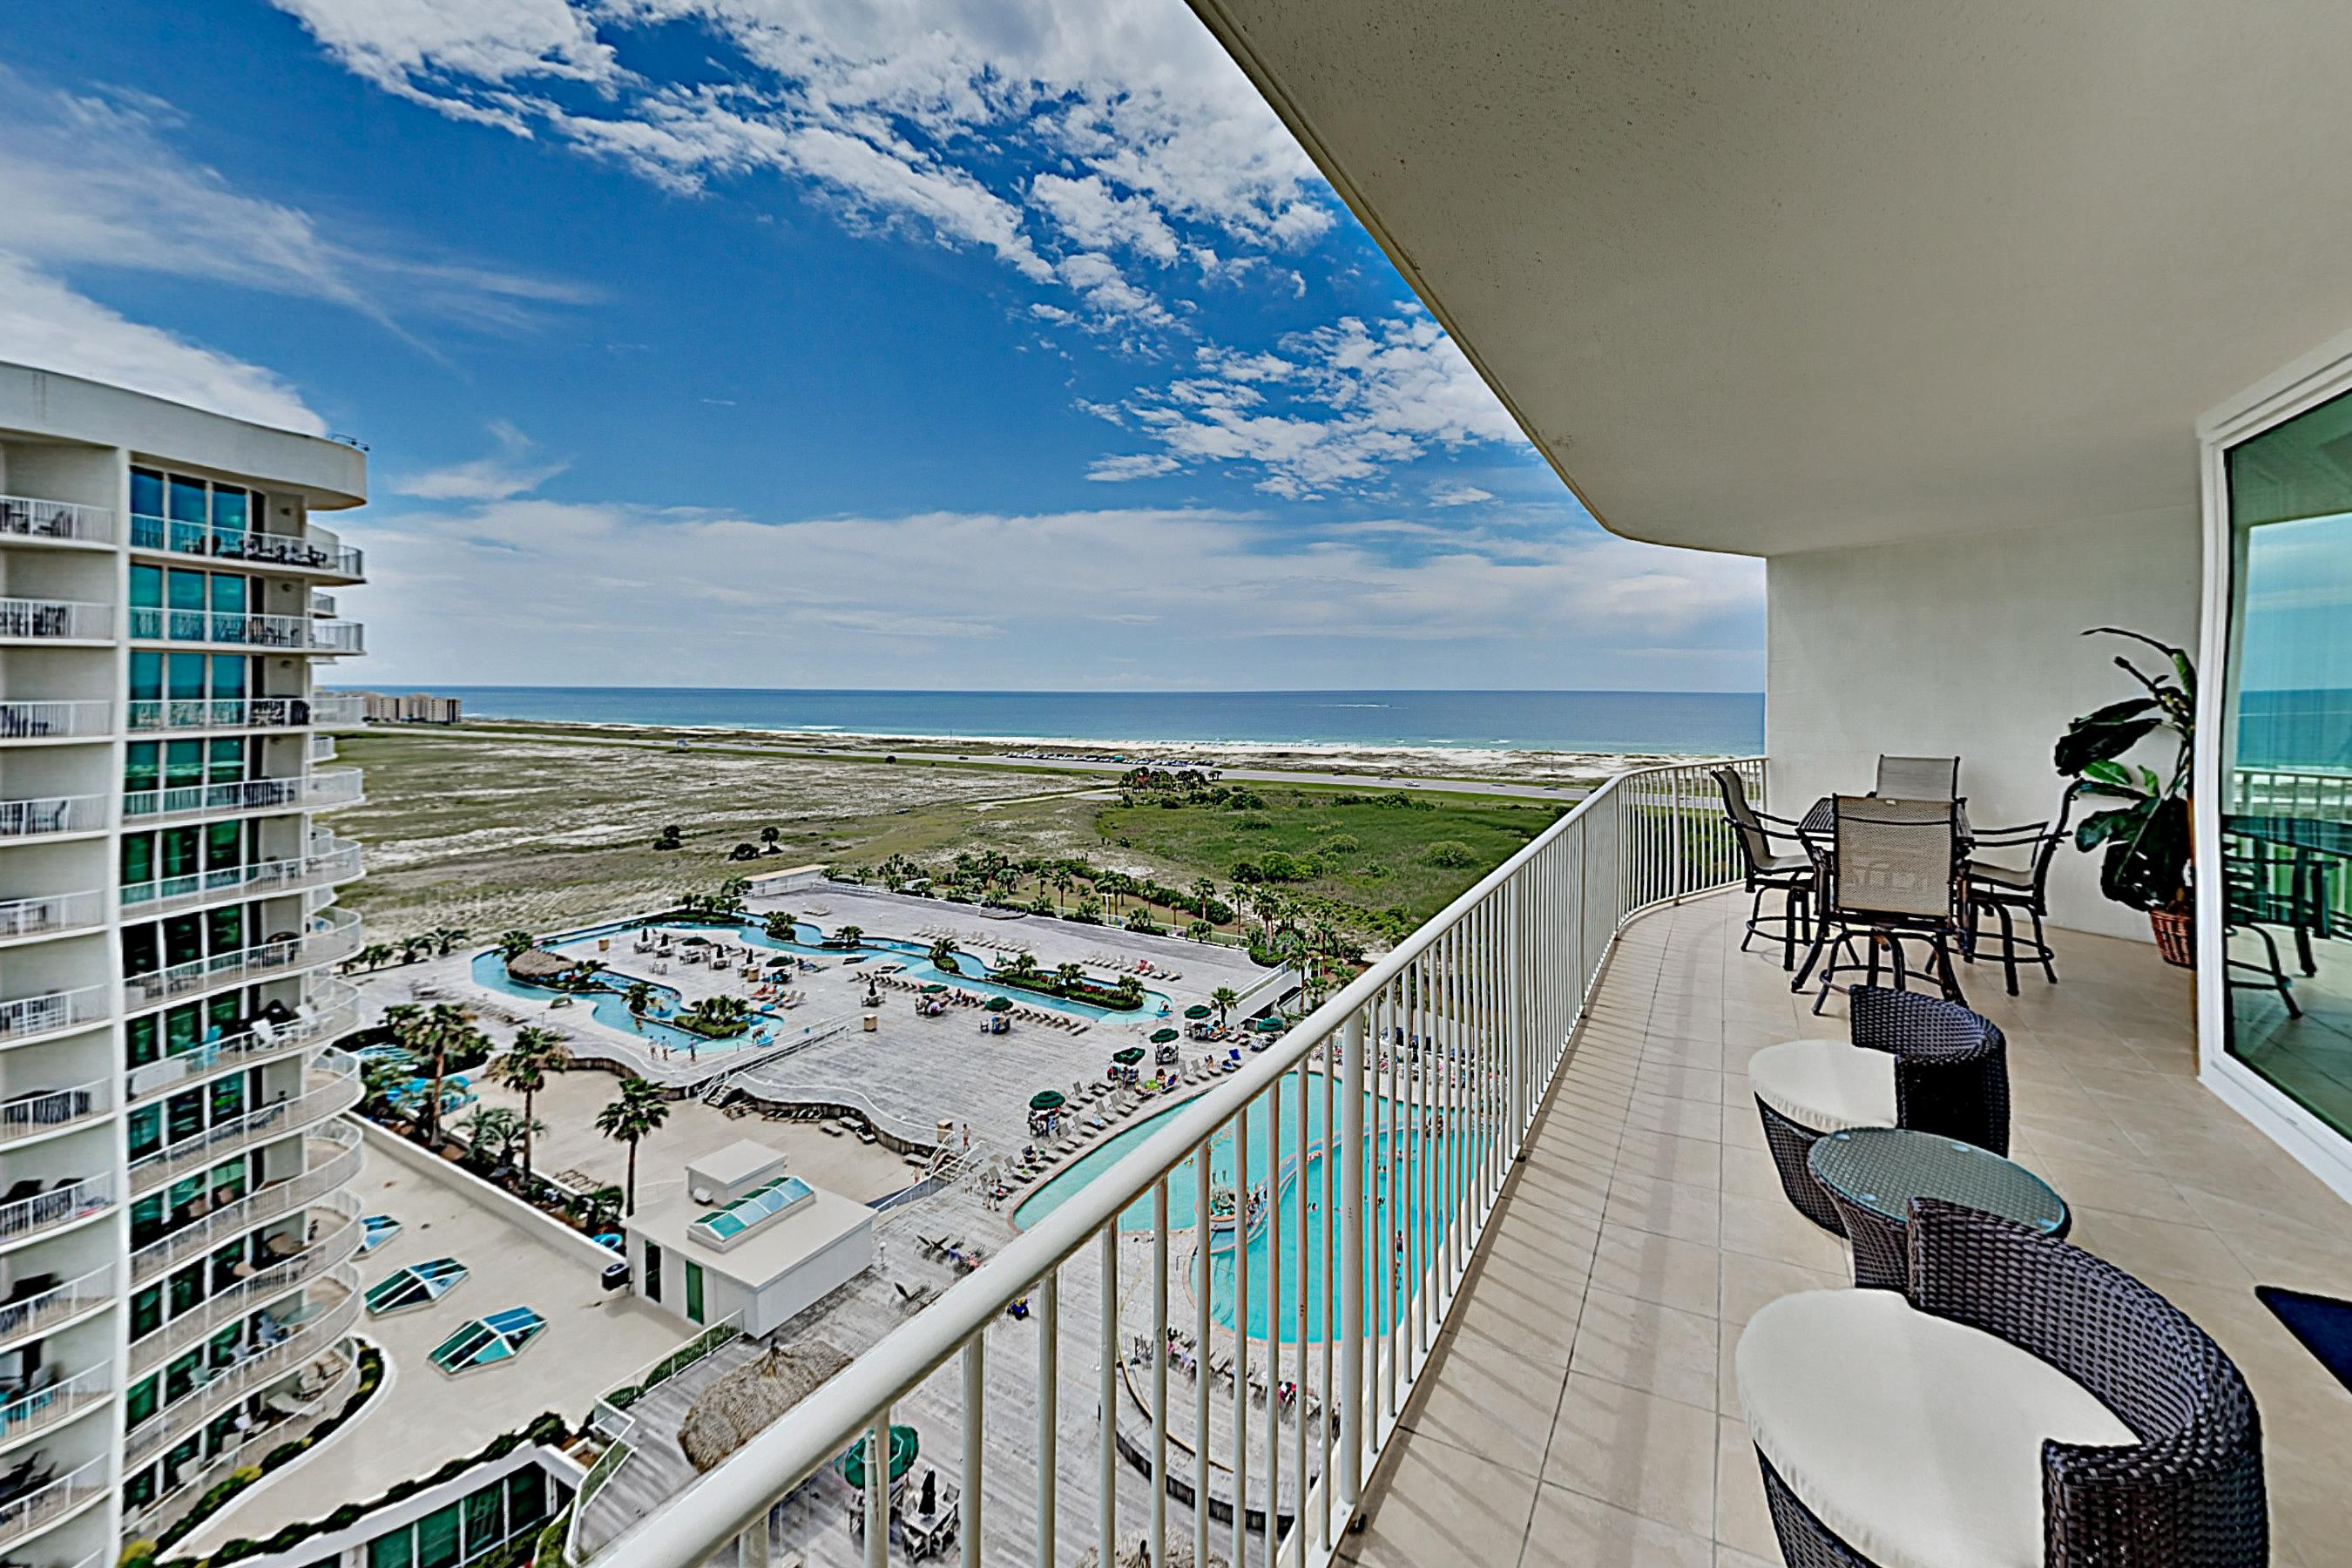 Property Image 1 - Modern Gulf View Condo with Lazy River, Sauna & Tennis